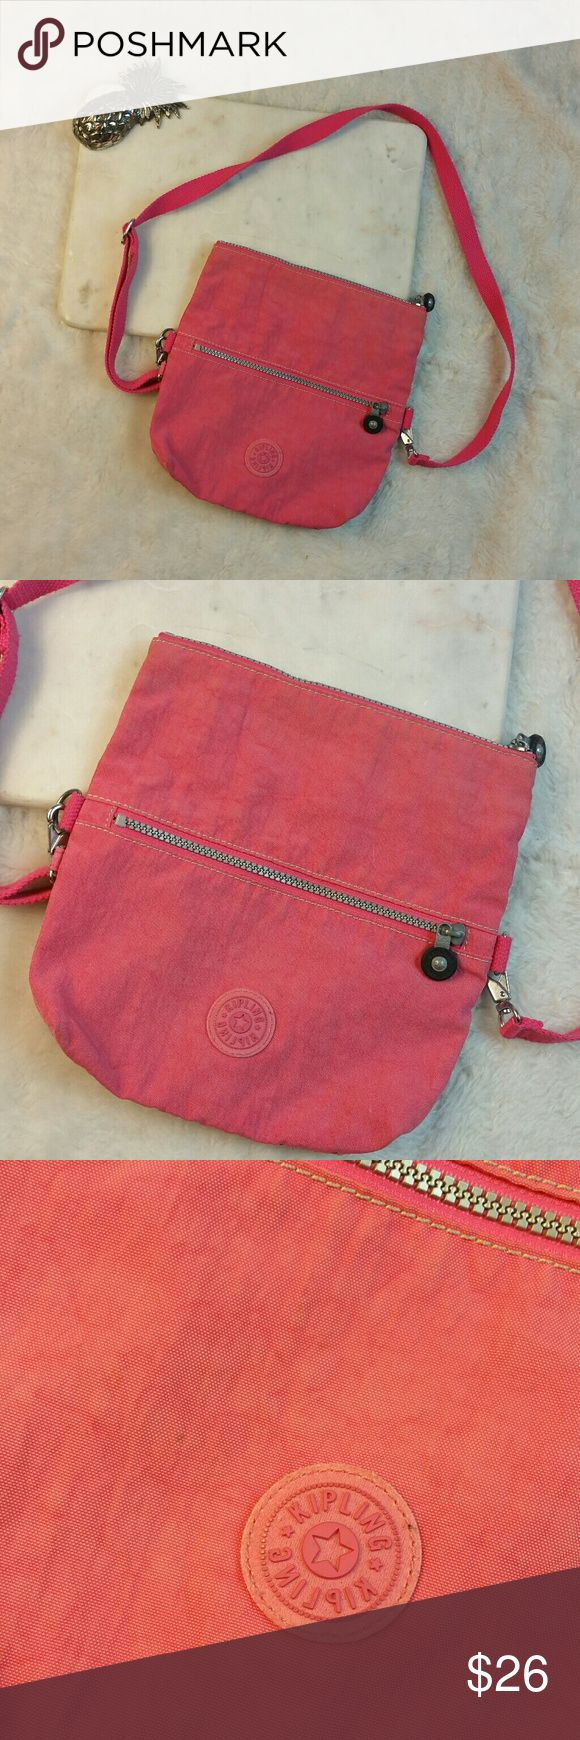 Kipling Frug s handbag cross body pink Kipling Frug s handbag cross body pink  Good condition light discoloration   Wear two ways. You can fold over or not.   Great for everyday or travel   9in across 10in bottom to top Kipling Bags